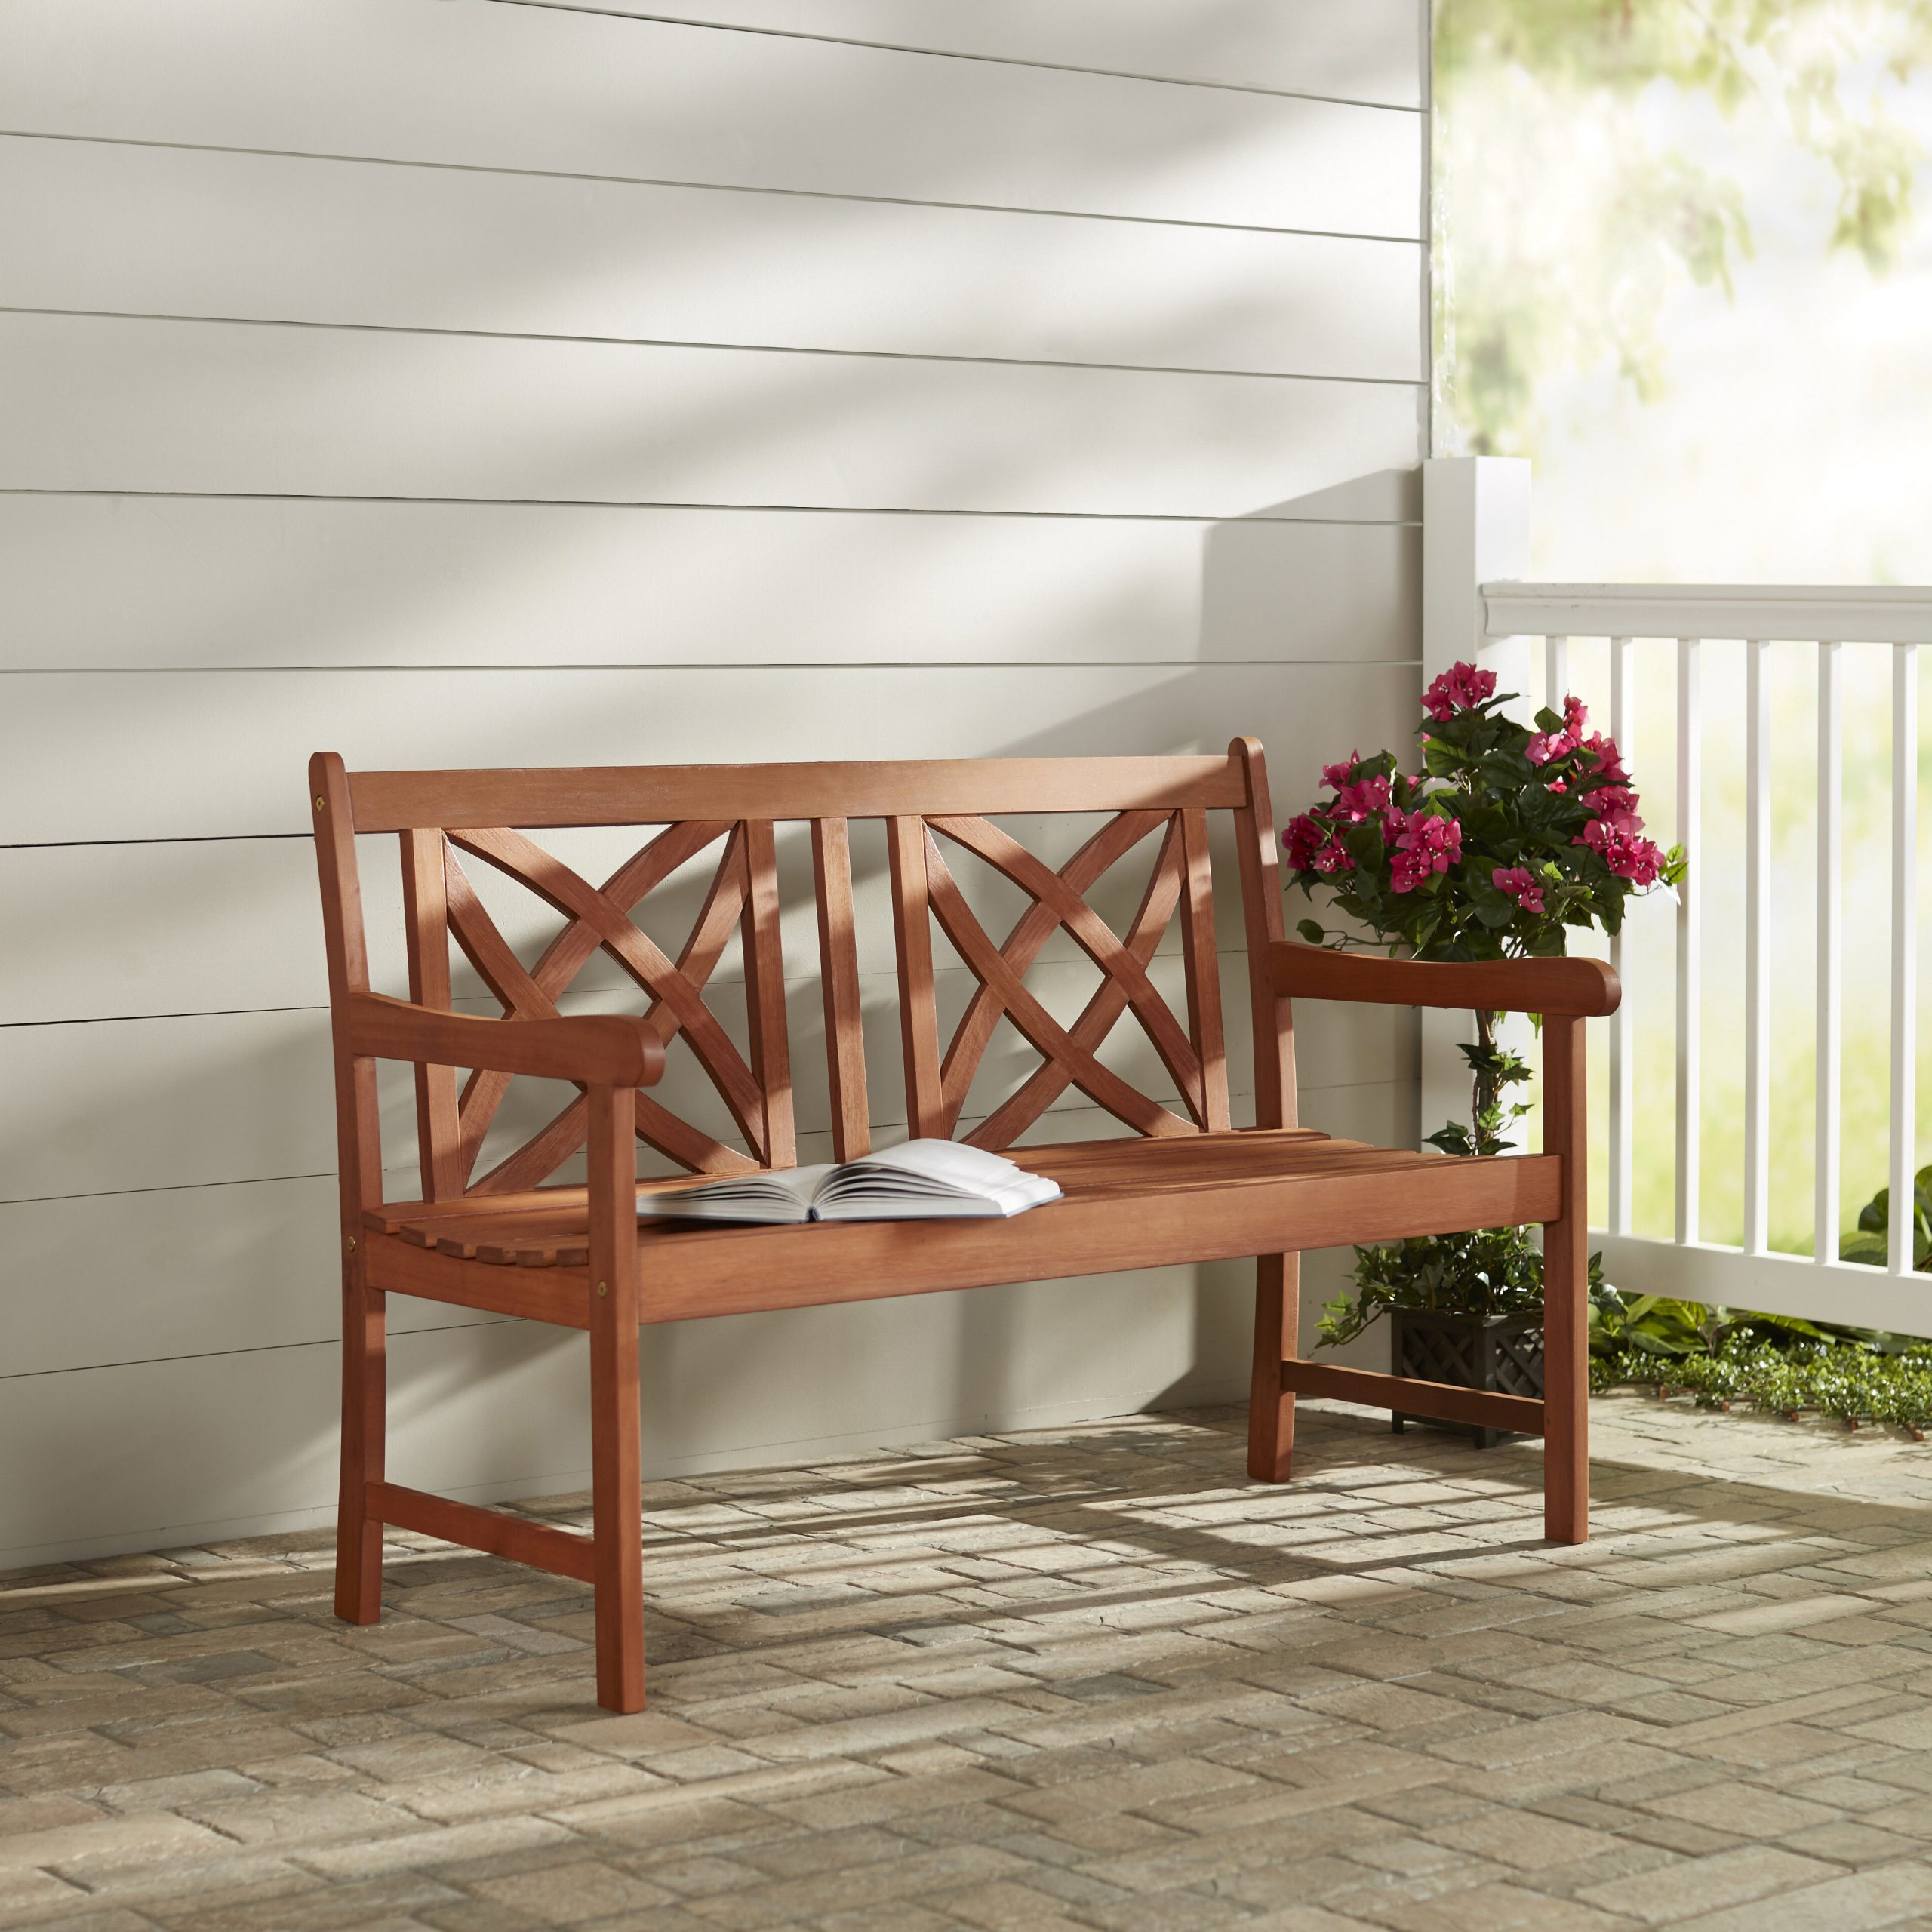 2019 Garden Outdoor Benches You'll Love In (View 13 of 30)